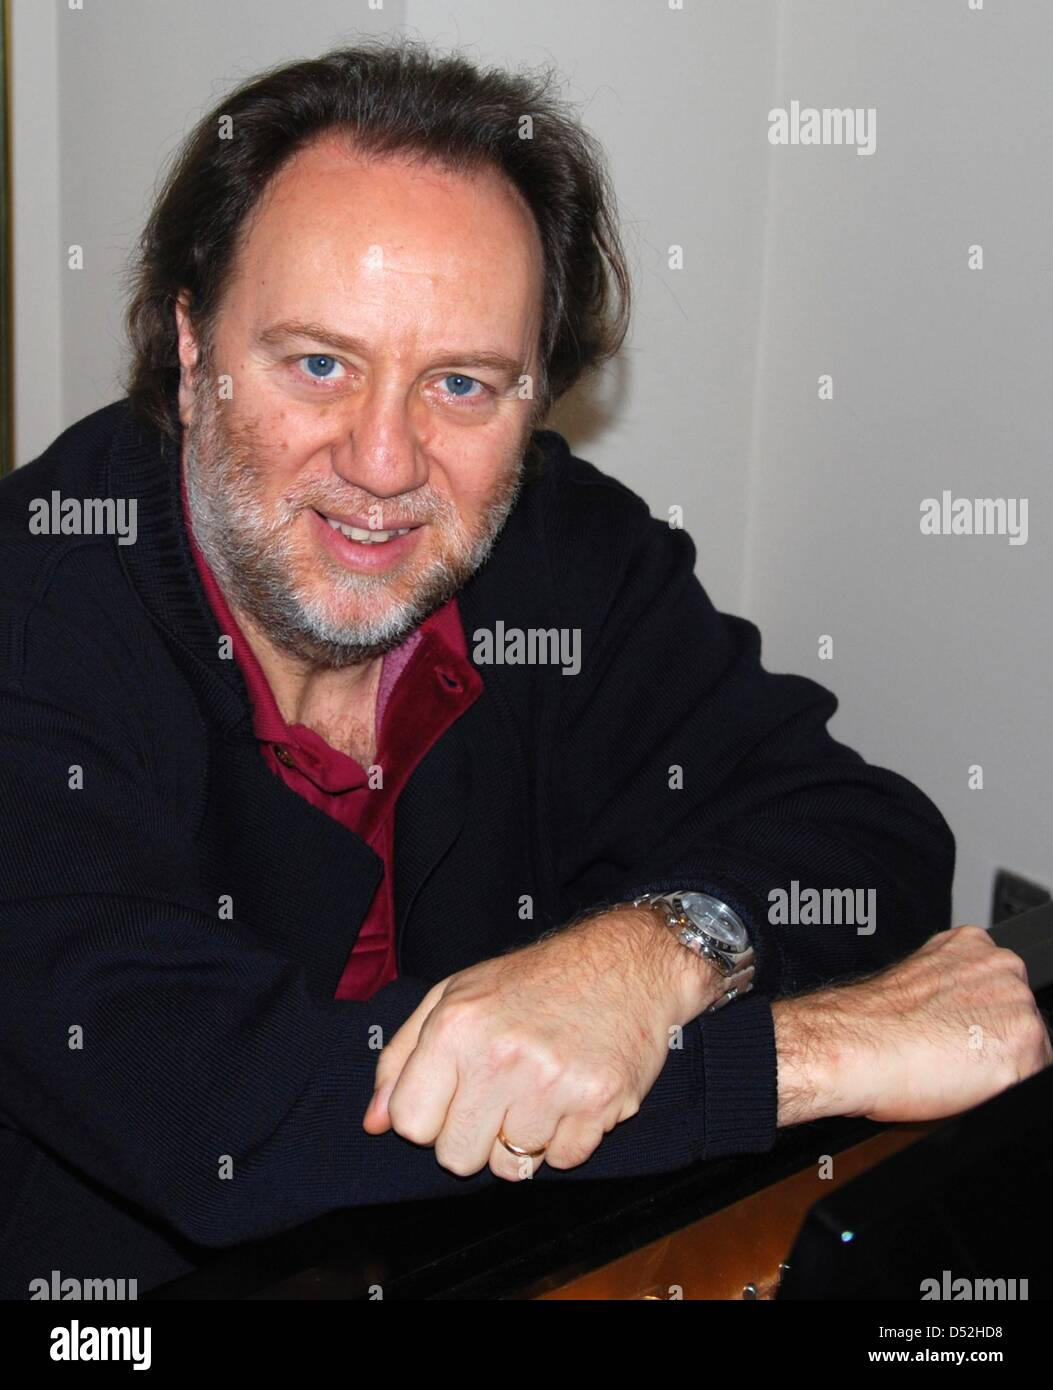 Riccardo Chailly, senior conductor of Leipzig's 'Gewandhaus' orchestra seen on the sidelines of the - Stock Image